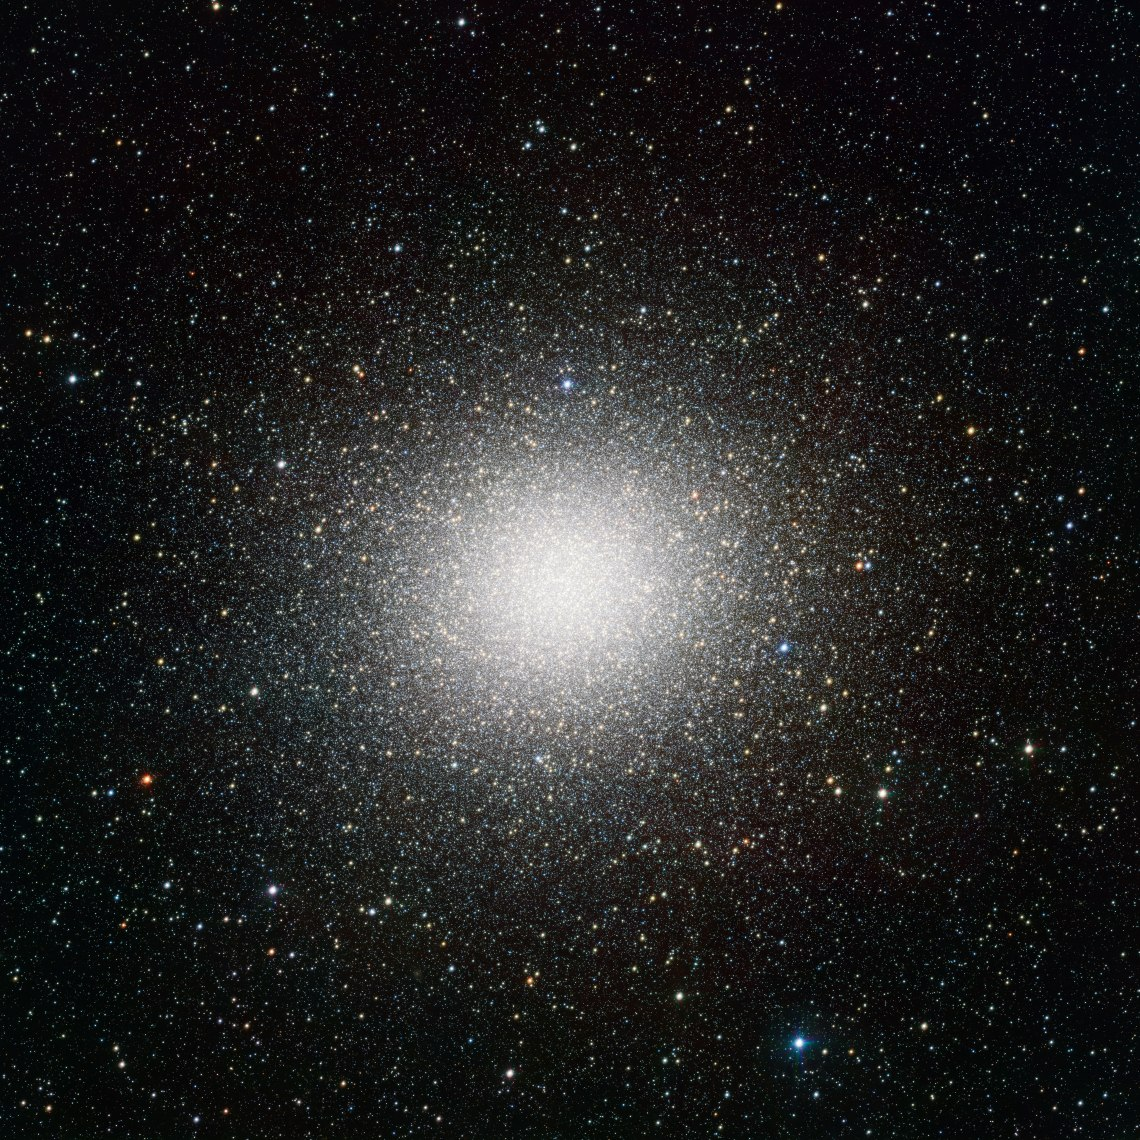 VST image of the giant globular star cluster Omega Centauri. Credit: ESO/INAF-VST/OmegaCAM